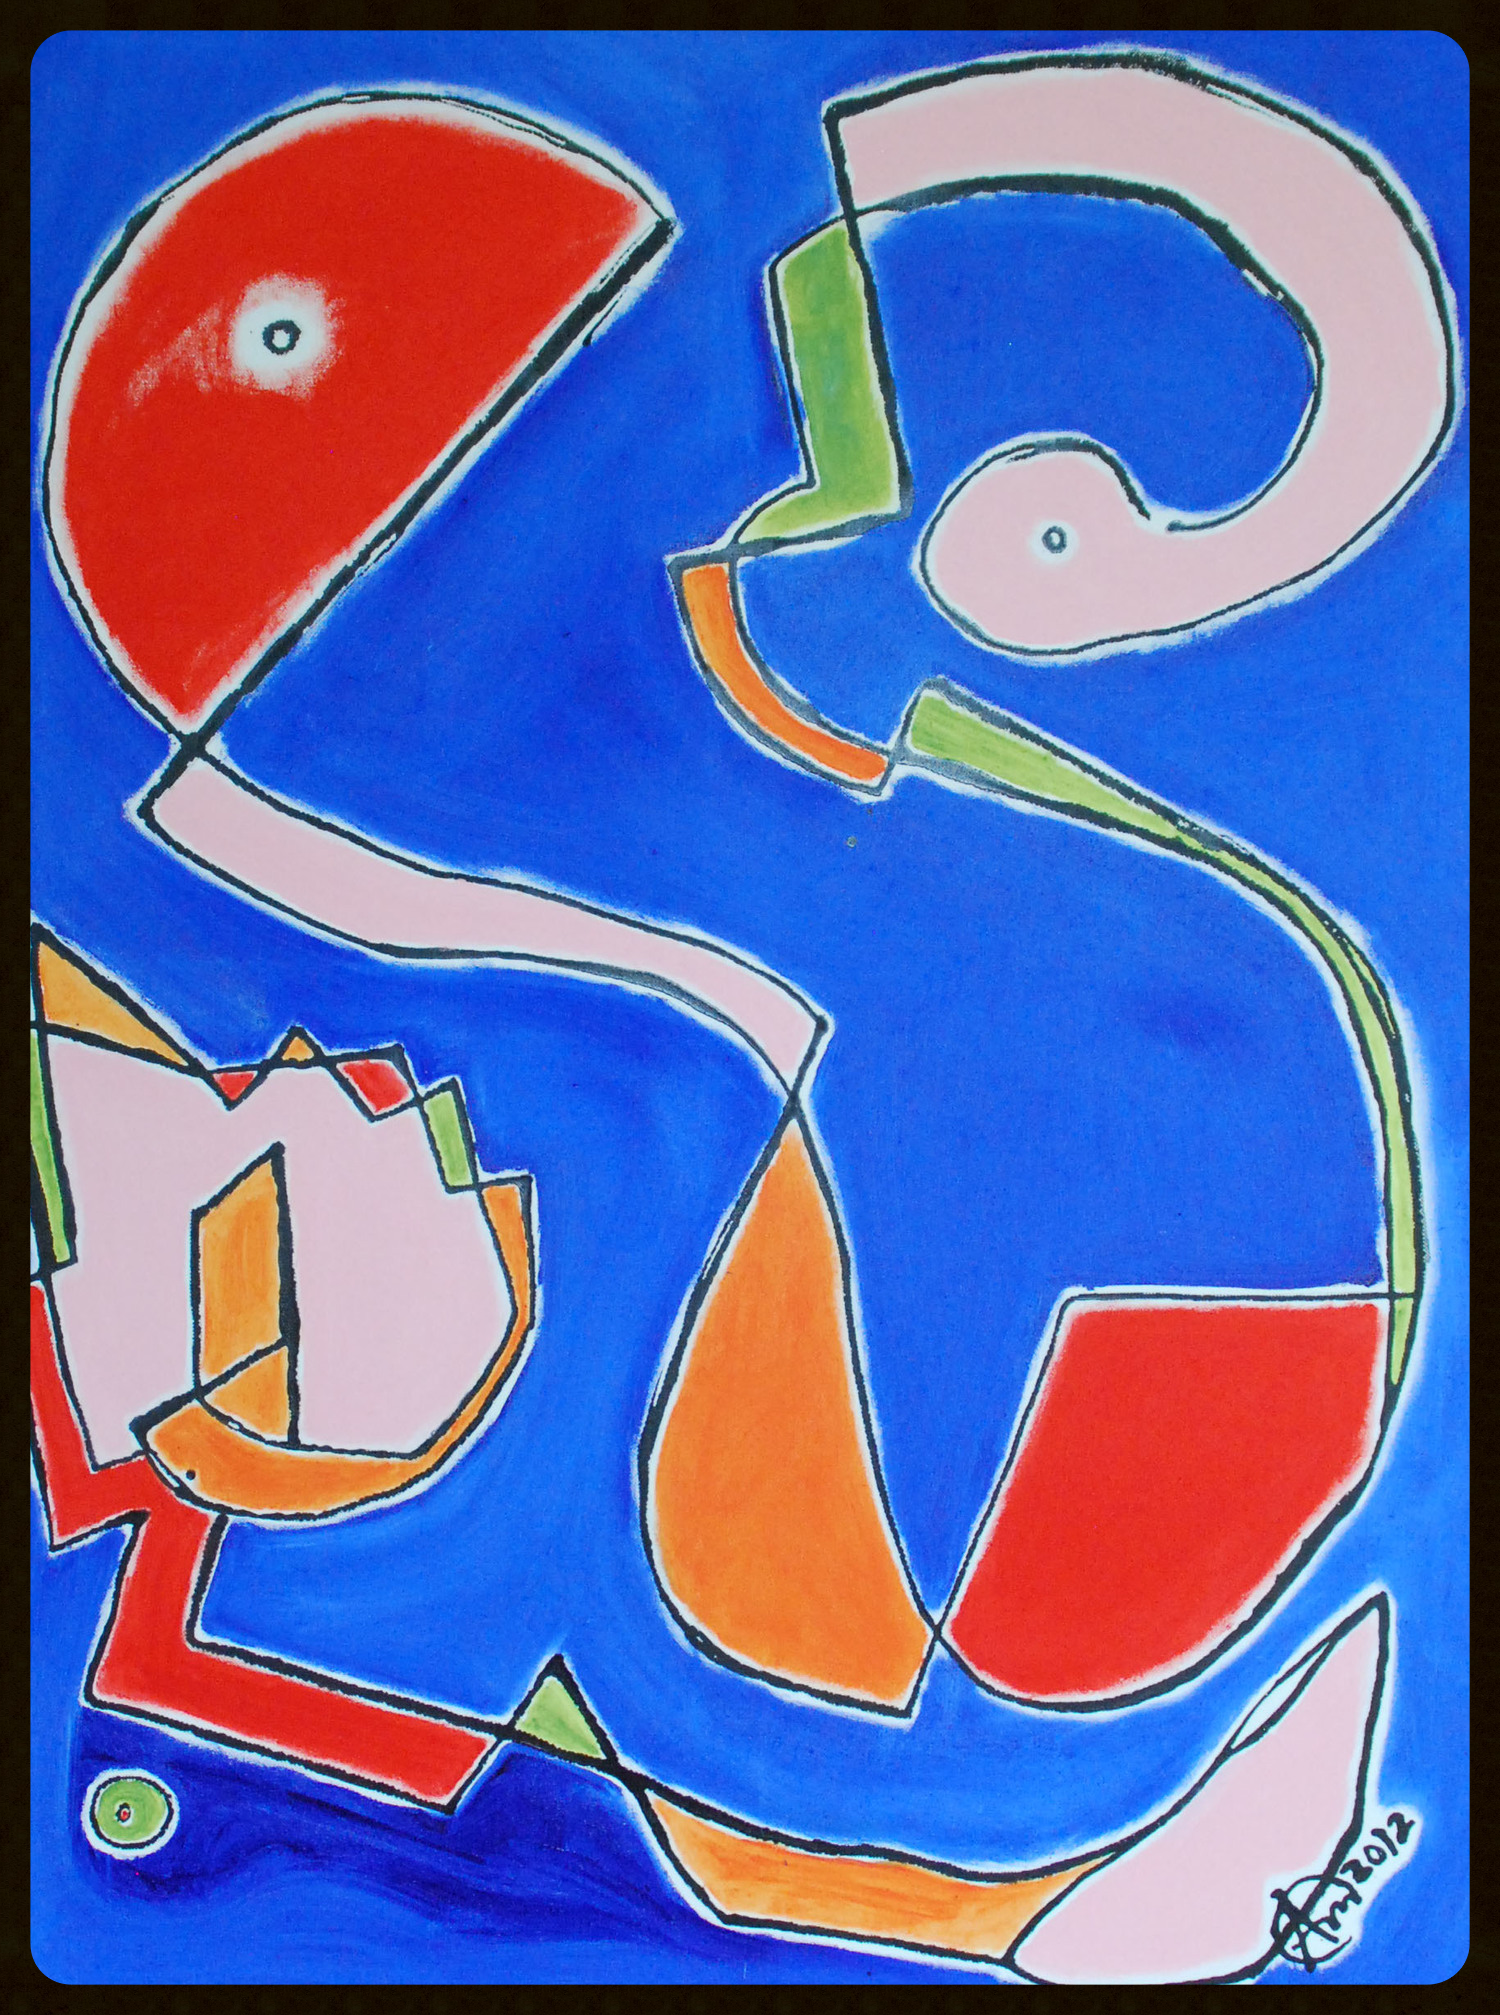 #1 Playful *SOLD*